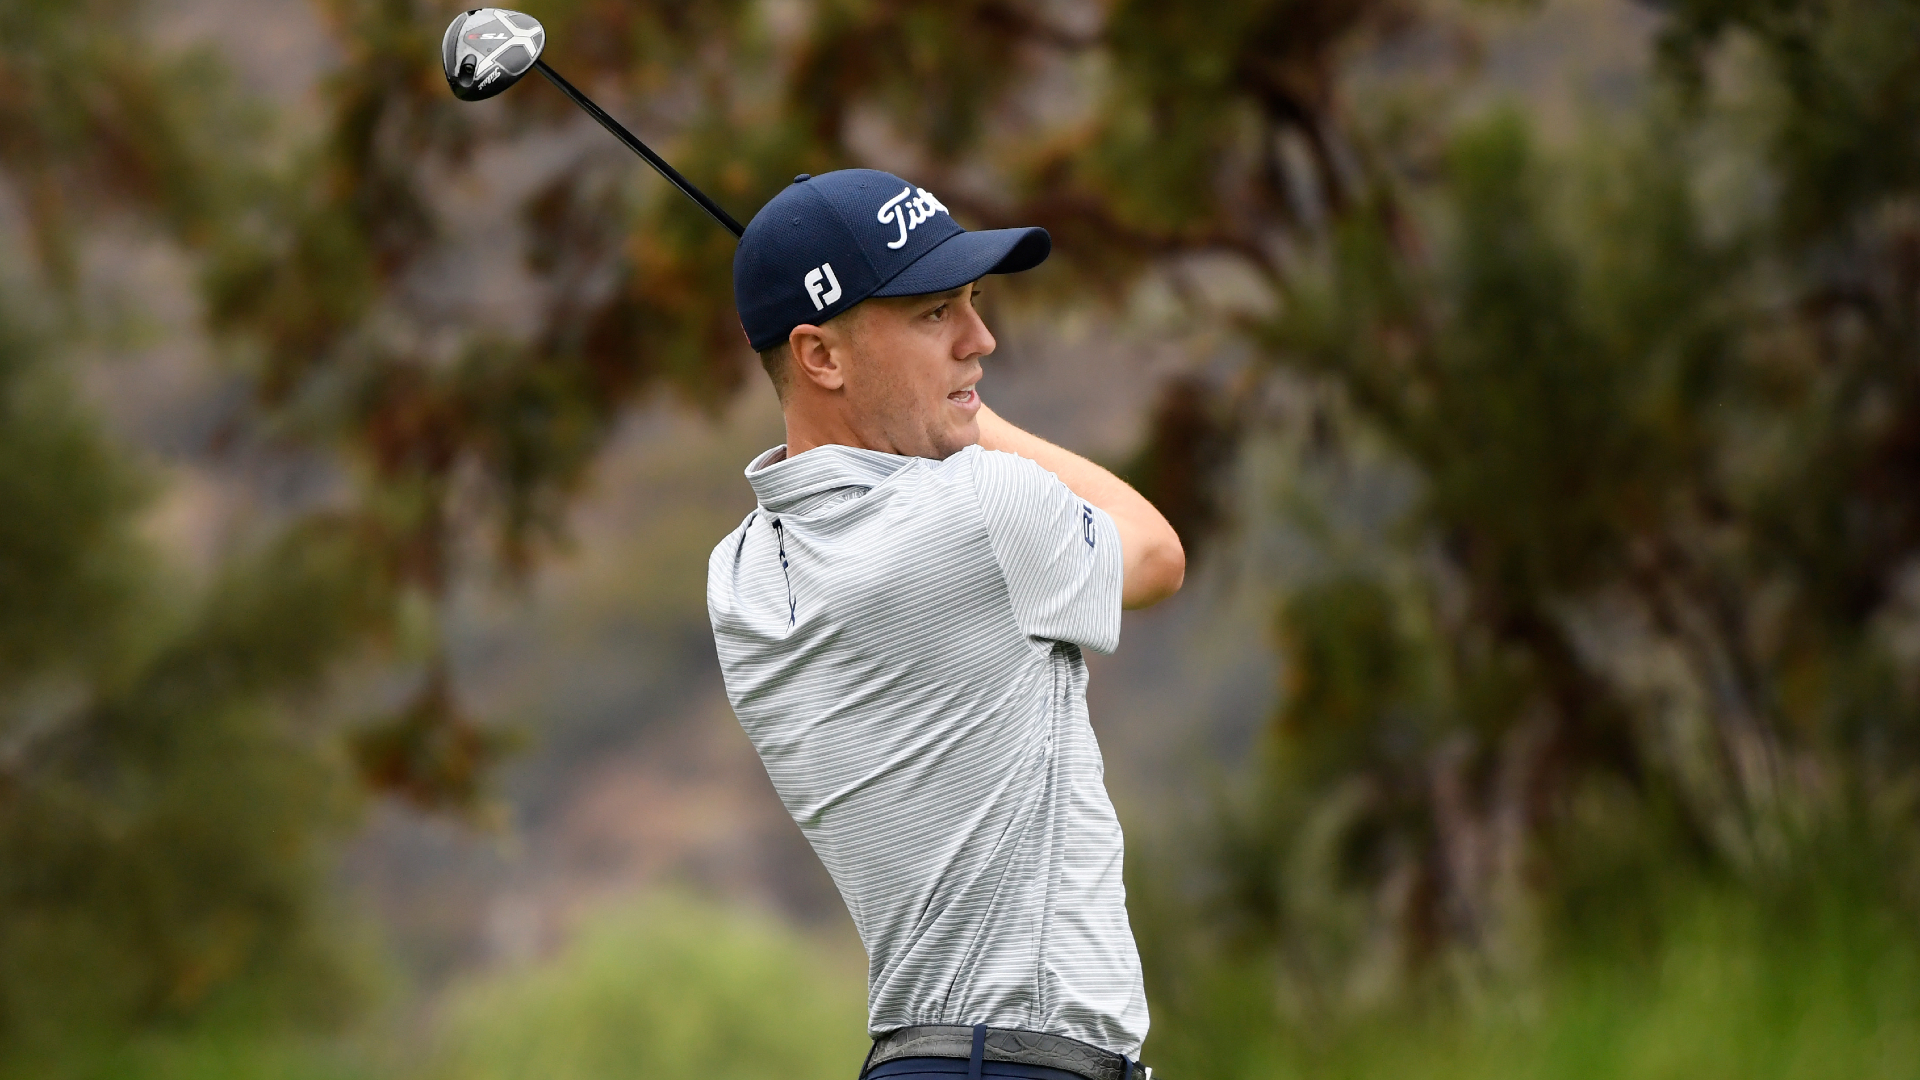 Justin Thomas leads Zozo Championship after another 65; Tiger Woods bounces back